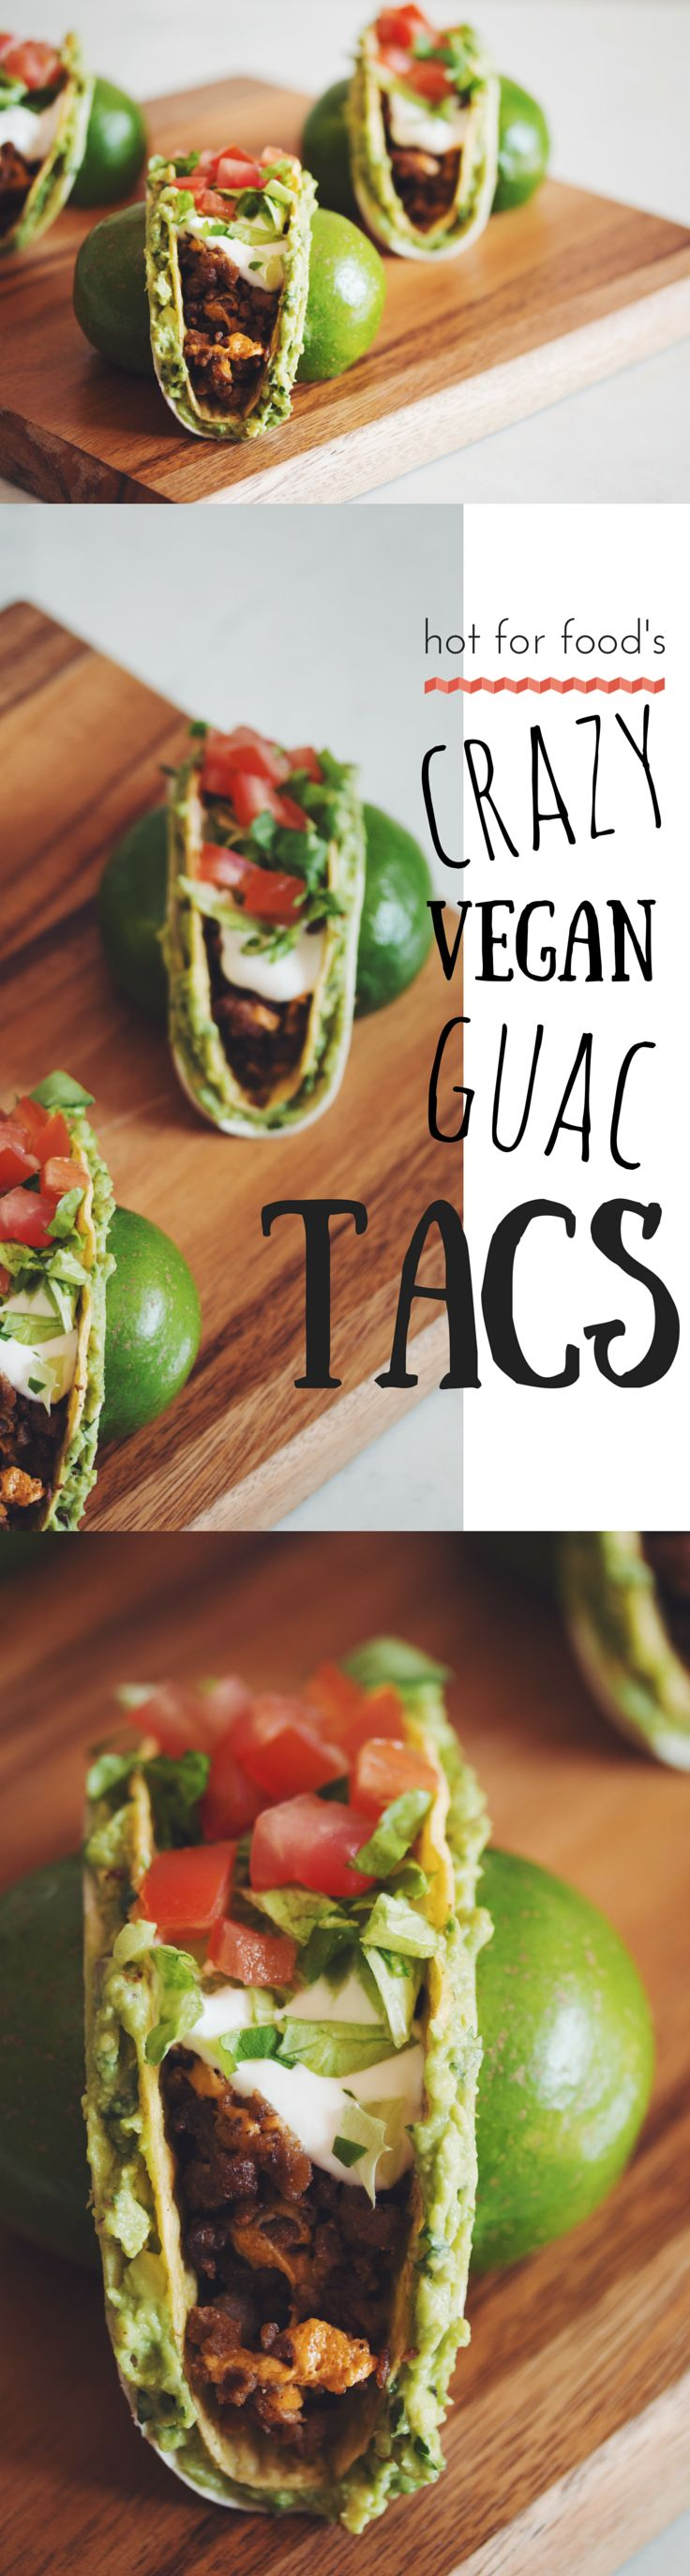 62 best best vegan party food images on pinterest vegan recipes recipe on hotforfoodblog guacamole tacos forumfinder Image collections